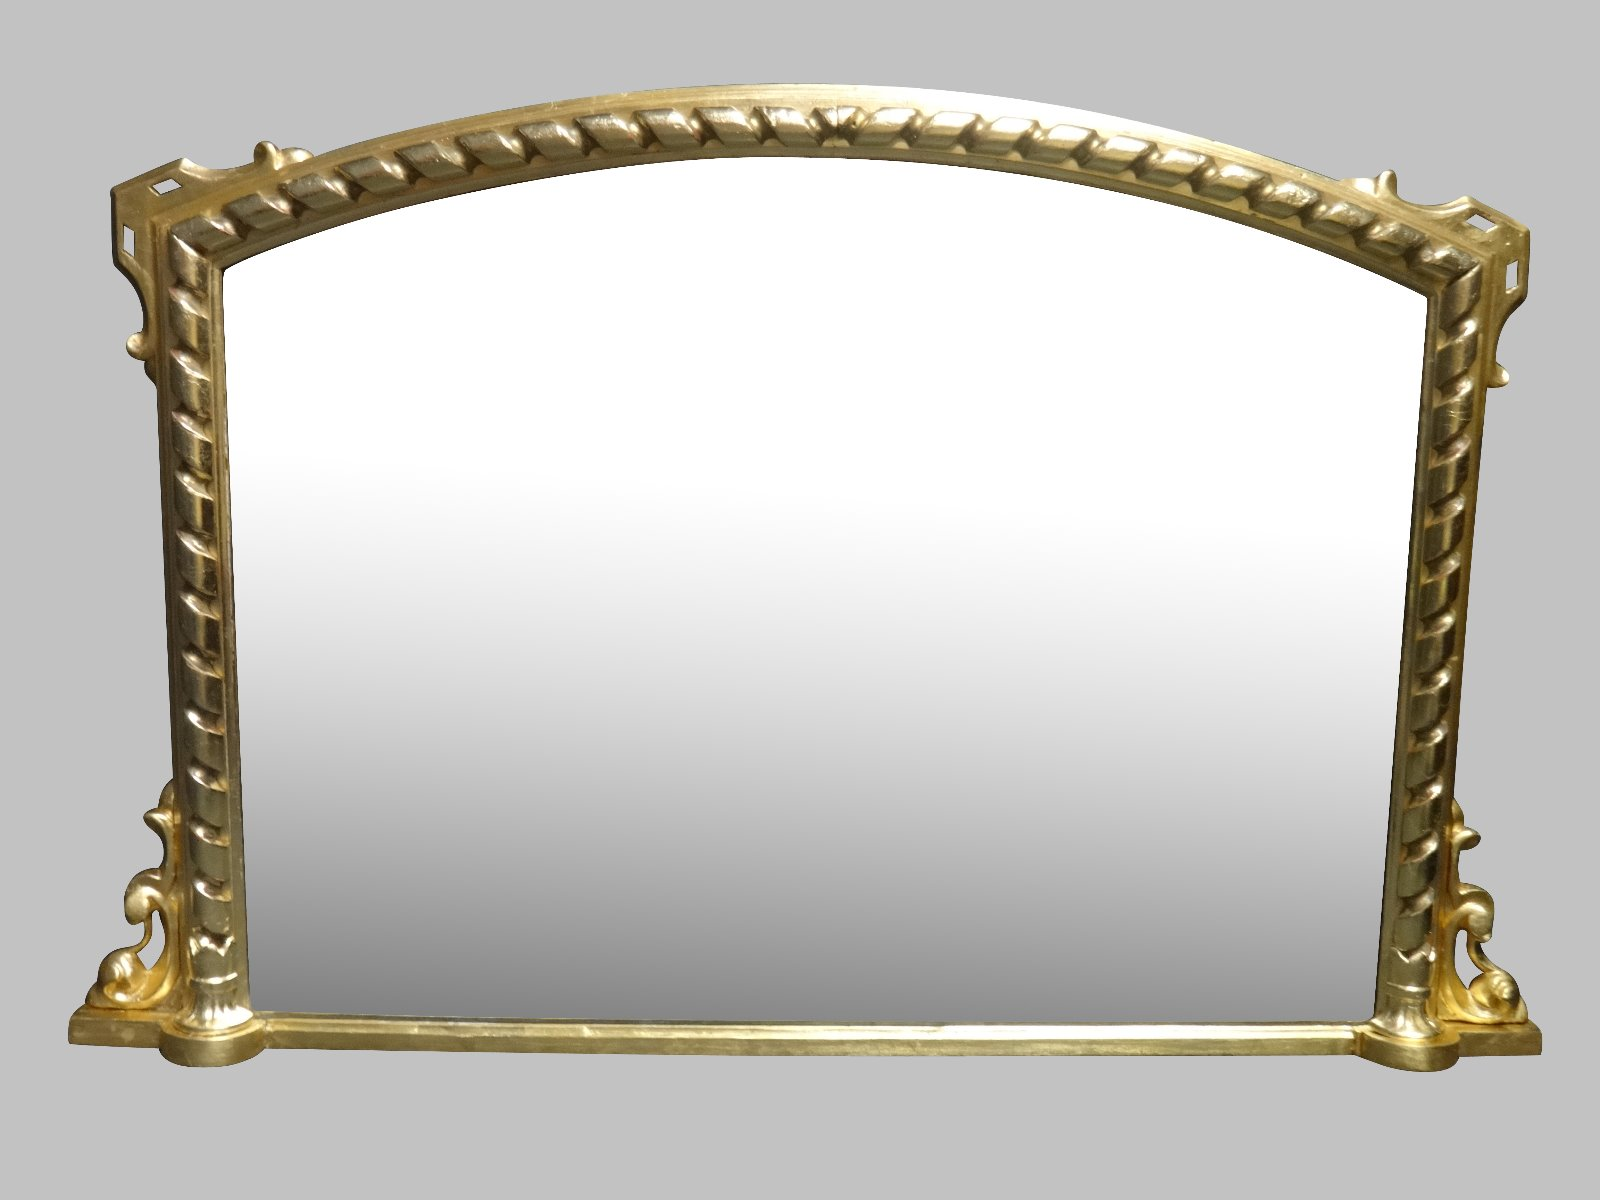 Fine English Arched Top Overmantle Mirror (1 of 1)